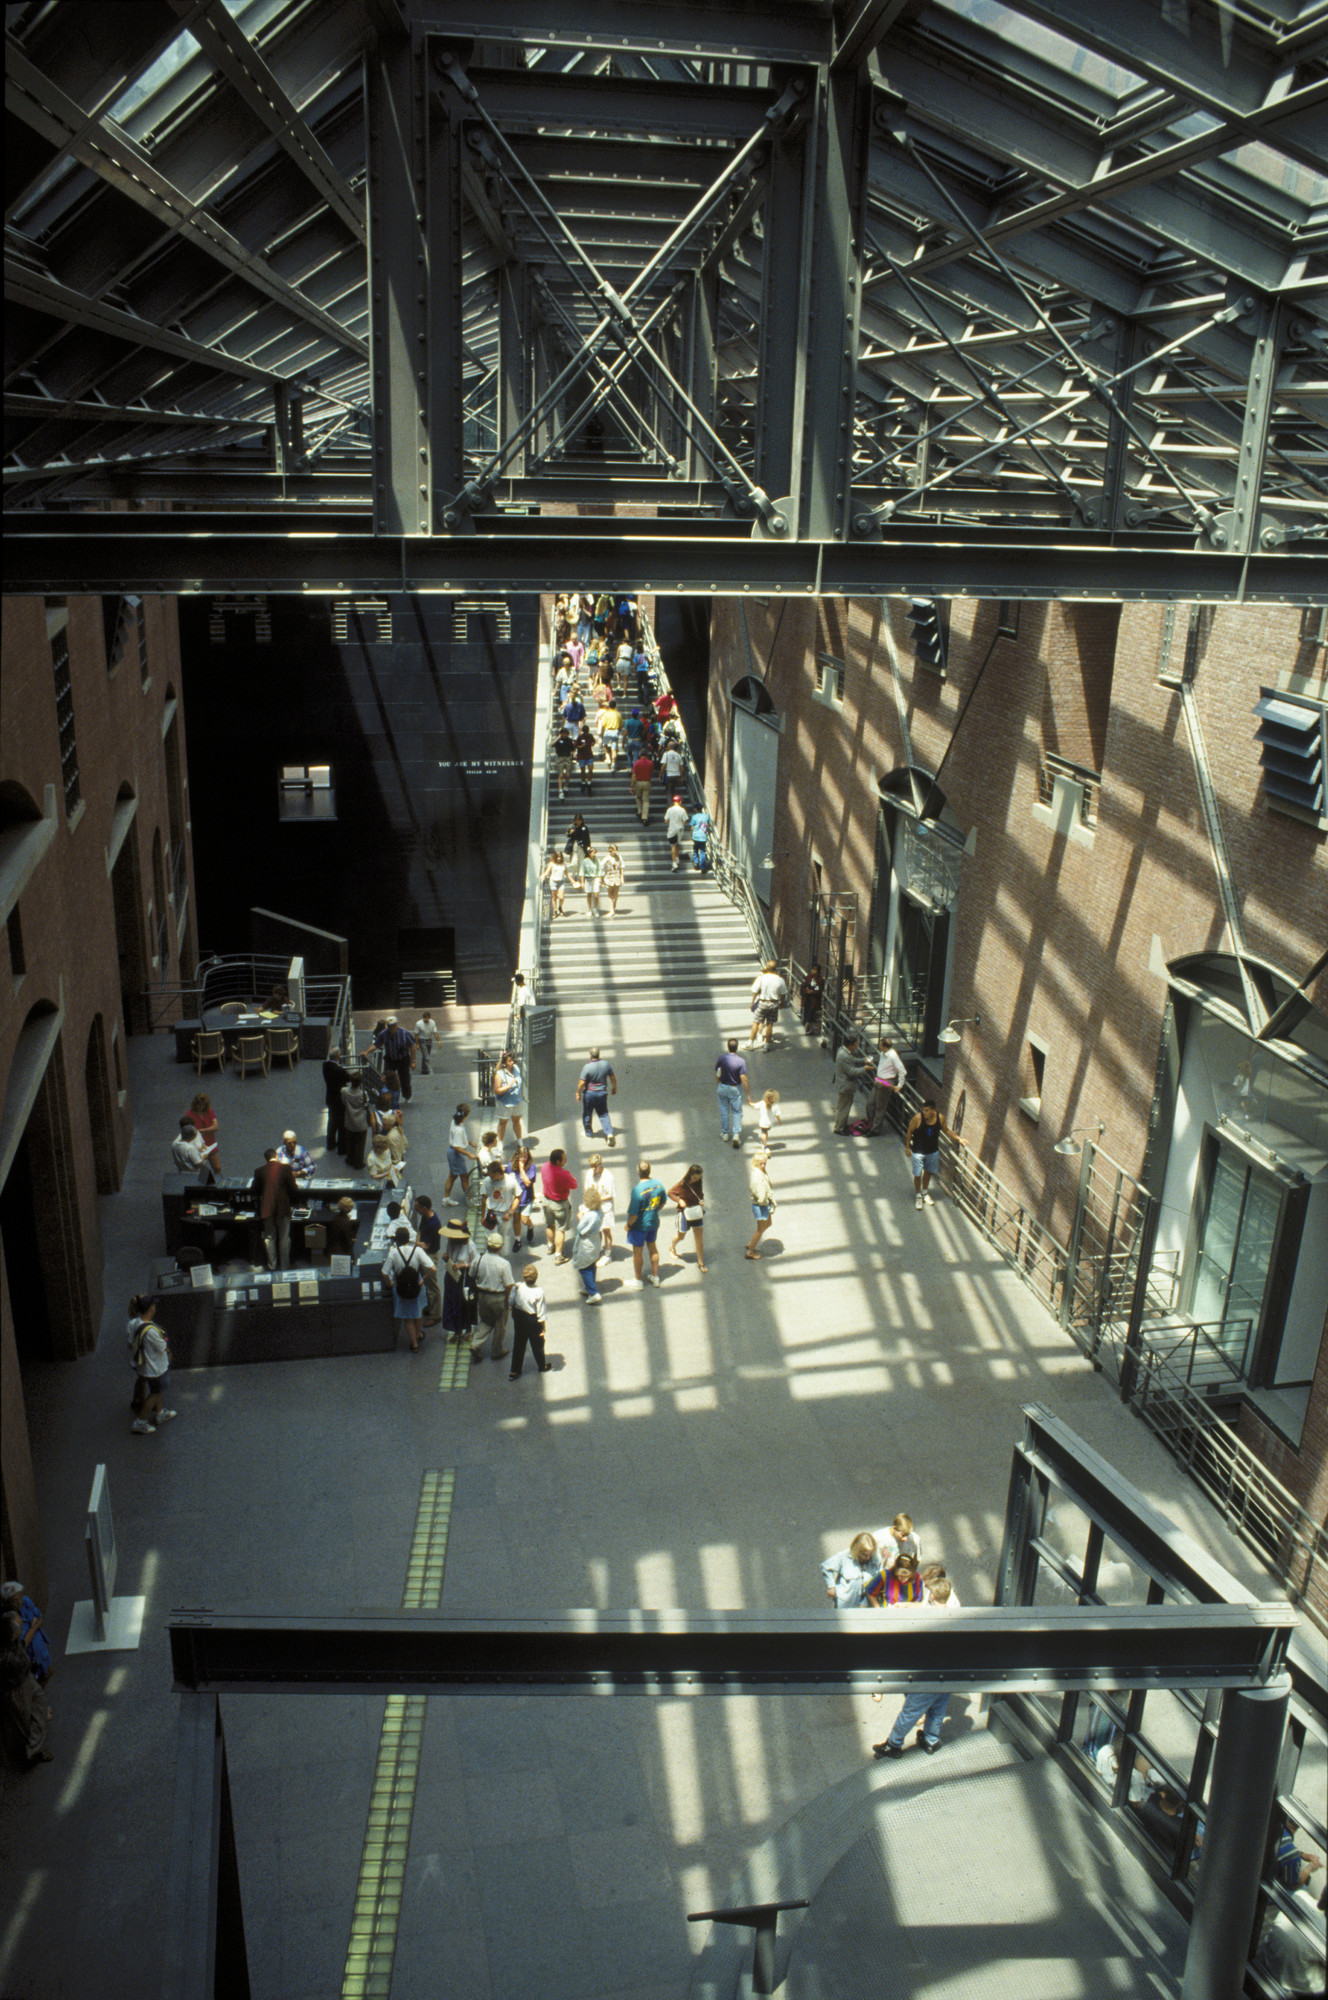 Visitors in the Hall of Witness in the U.S. Holocaust Memorial Museum taken from the second floor.